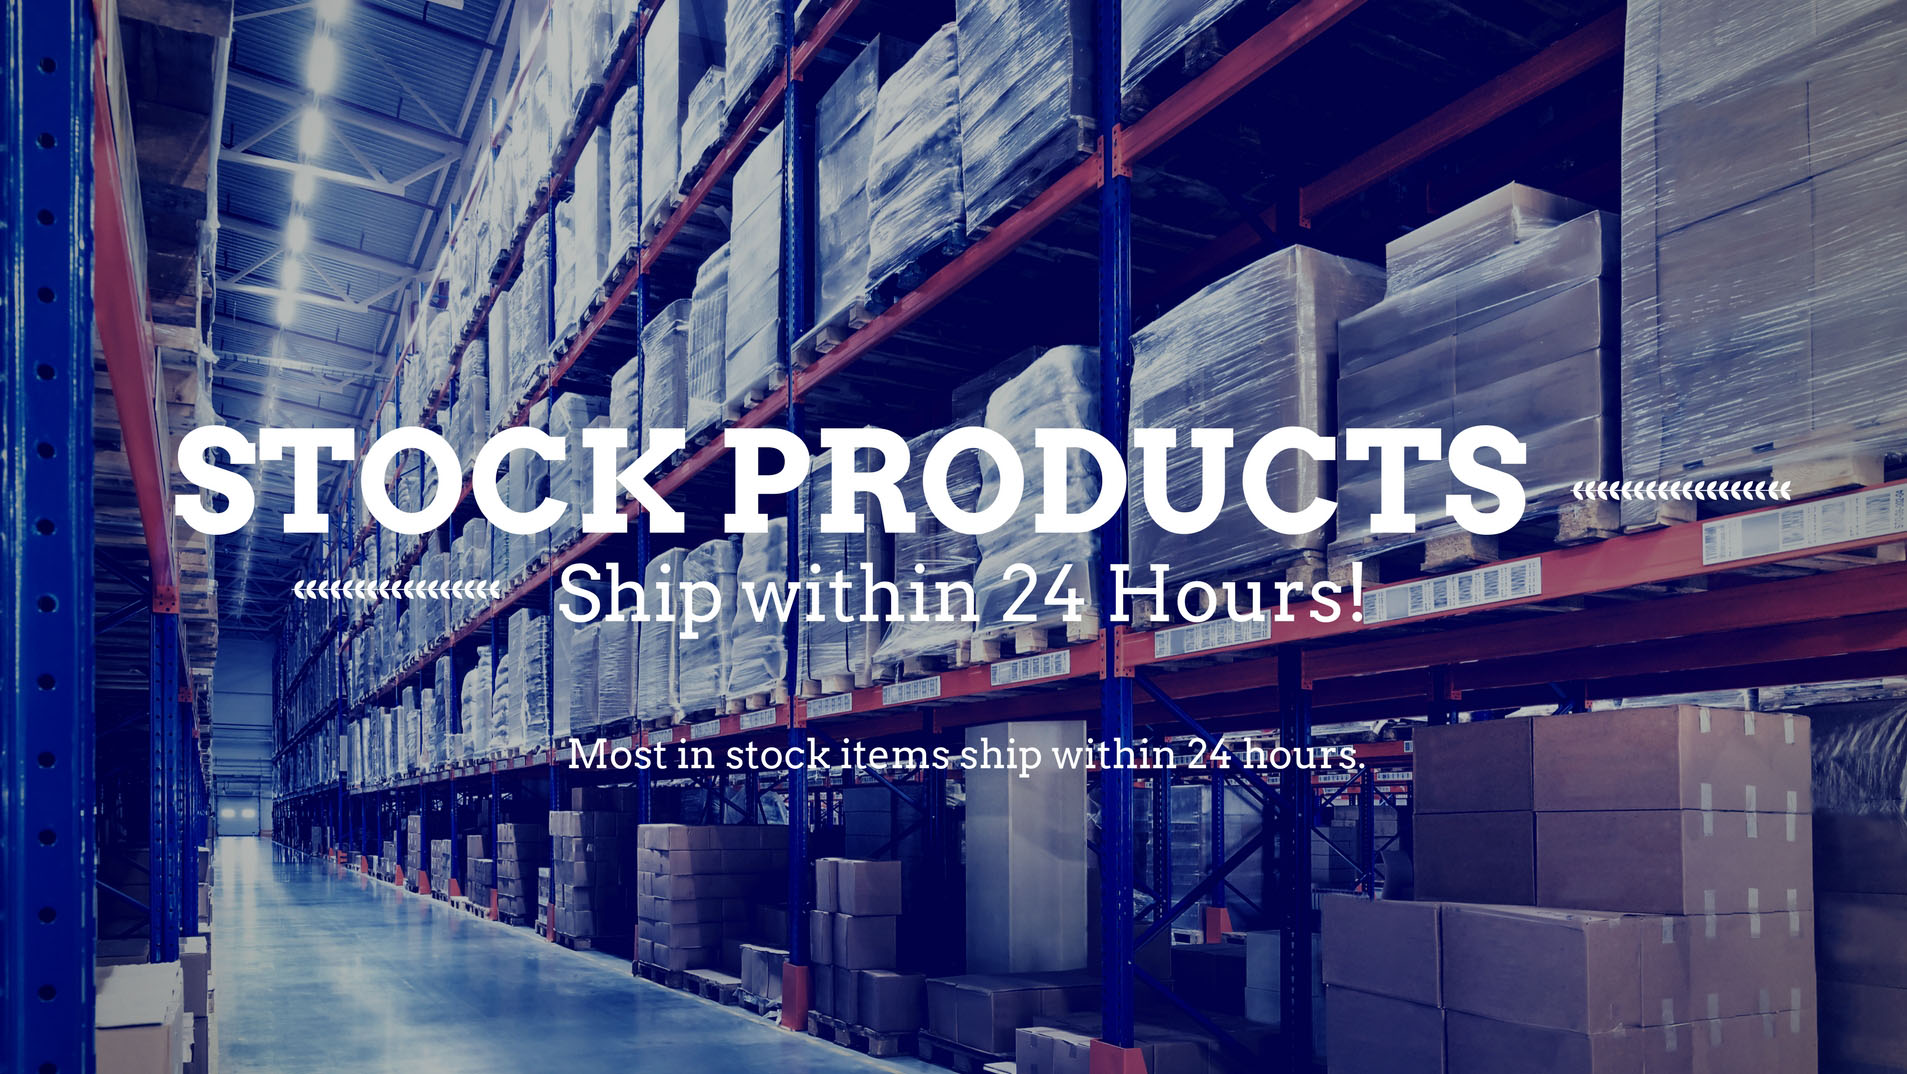 Stock Products at U.S. Packaging Ship within 24 hours